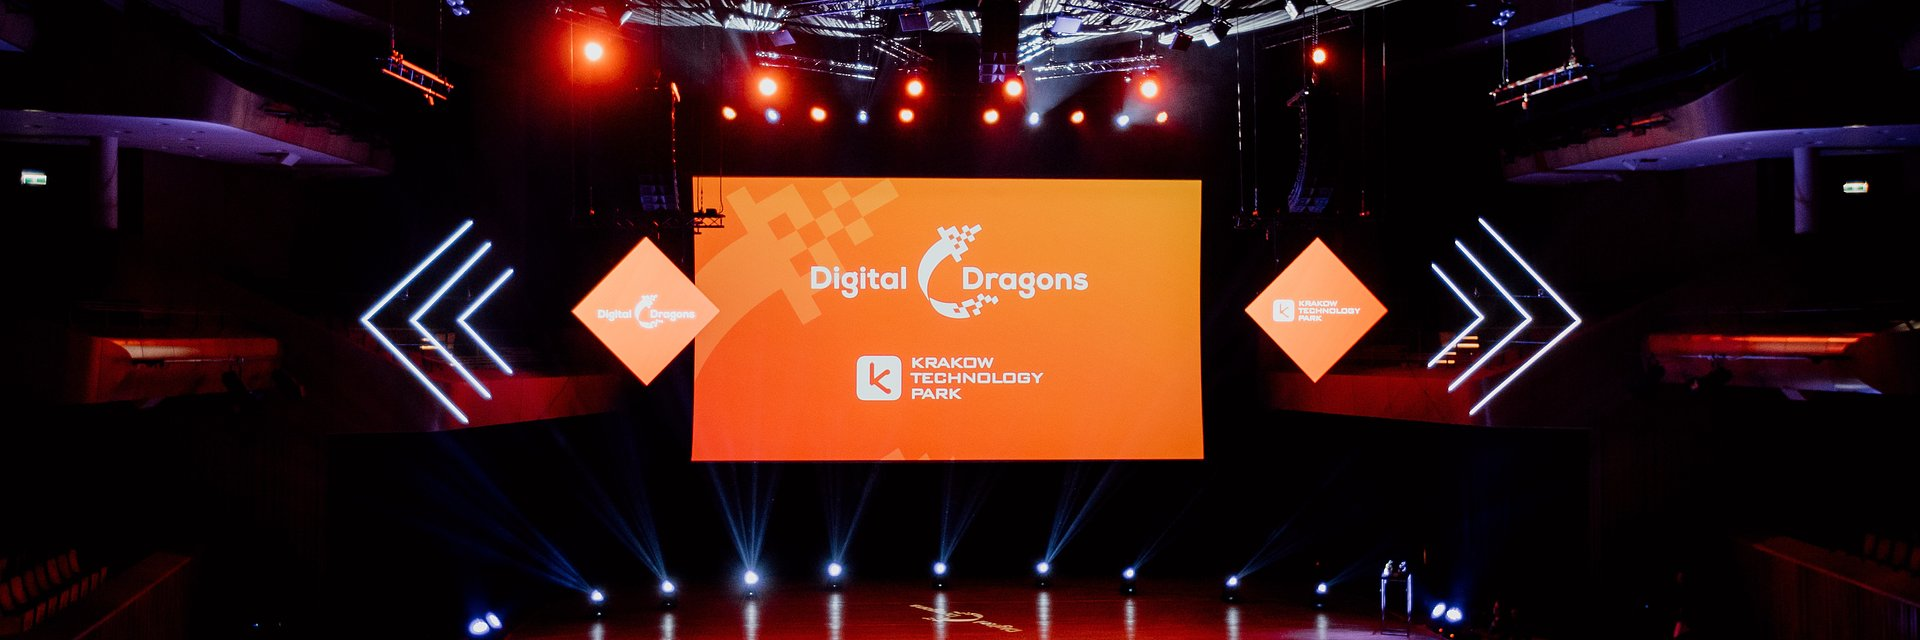 Let's meet at Digital Dragons online, and face to face during the networking day in Krakow!